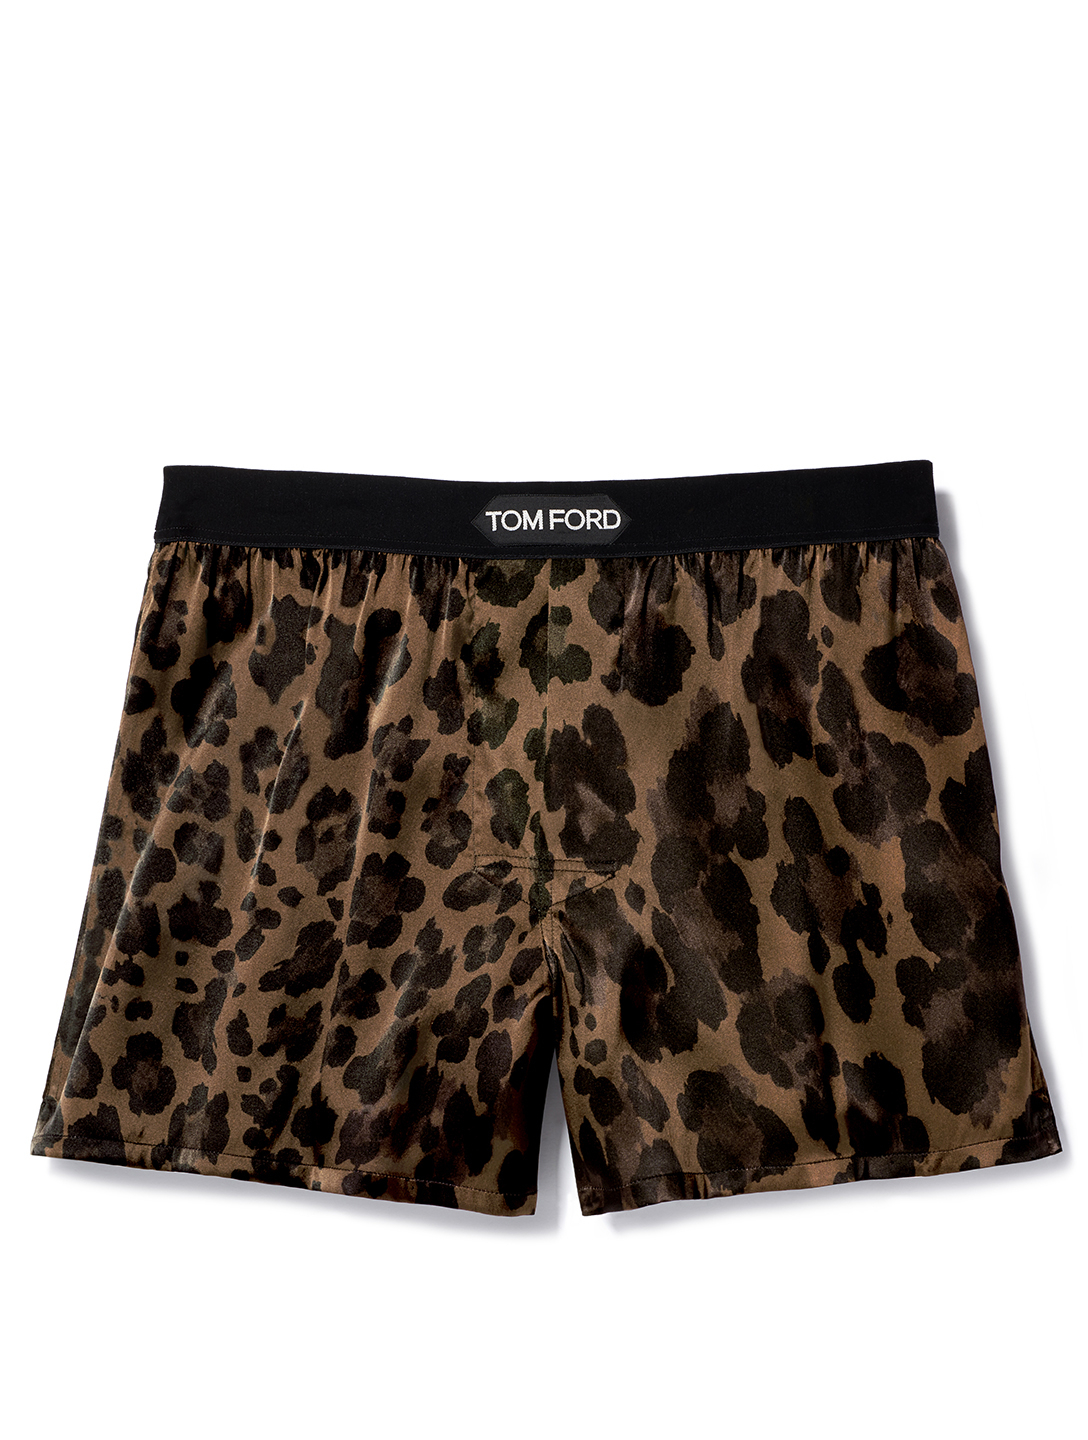 TOM FORD Printed Silk Short Boxers With Logo Men's Brown